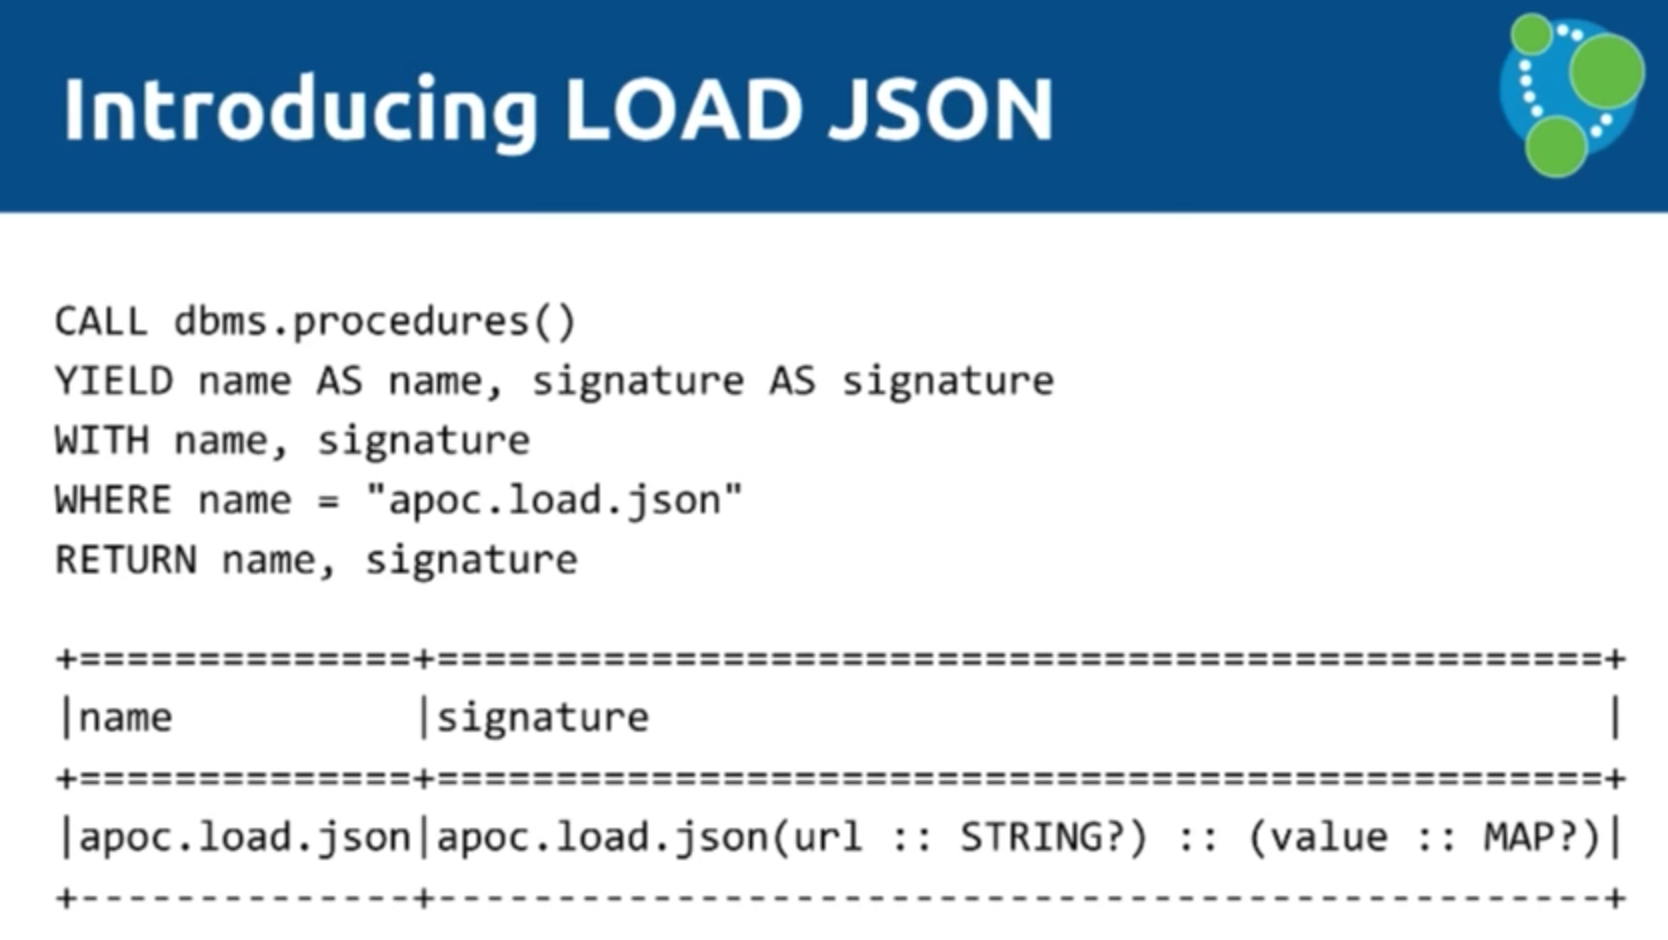 An Introduction to LOAD JSON